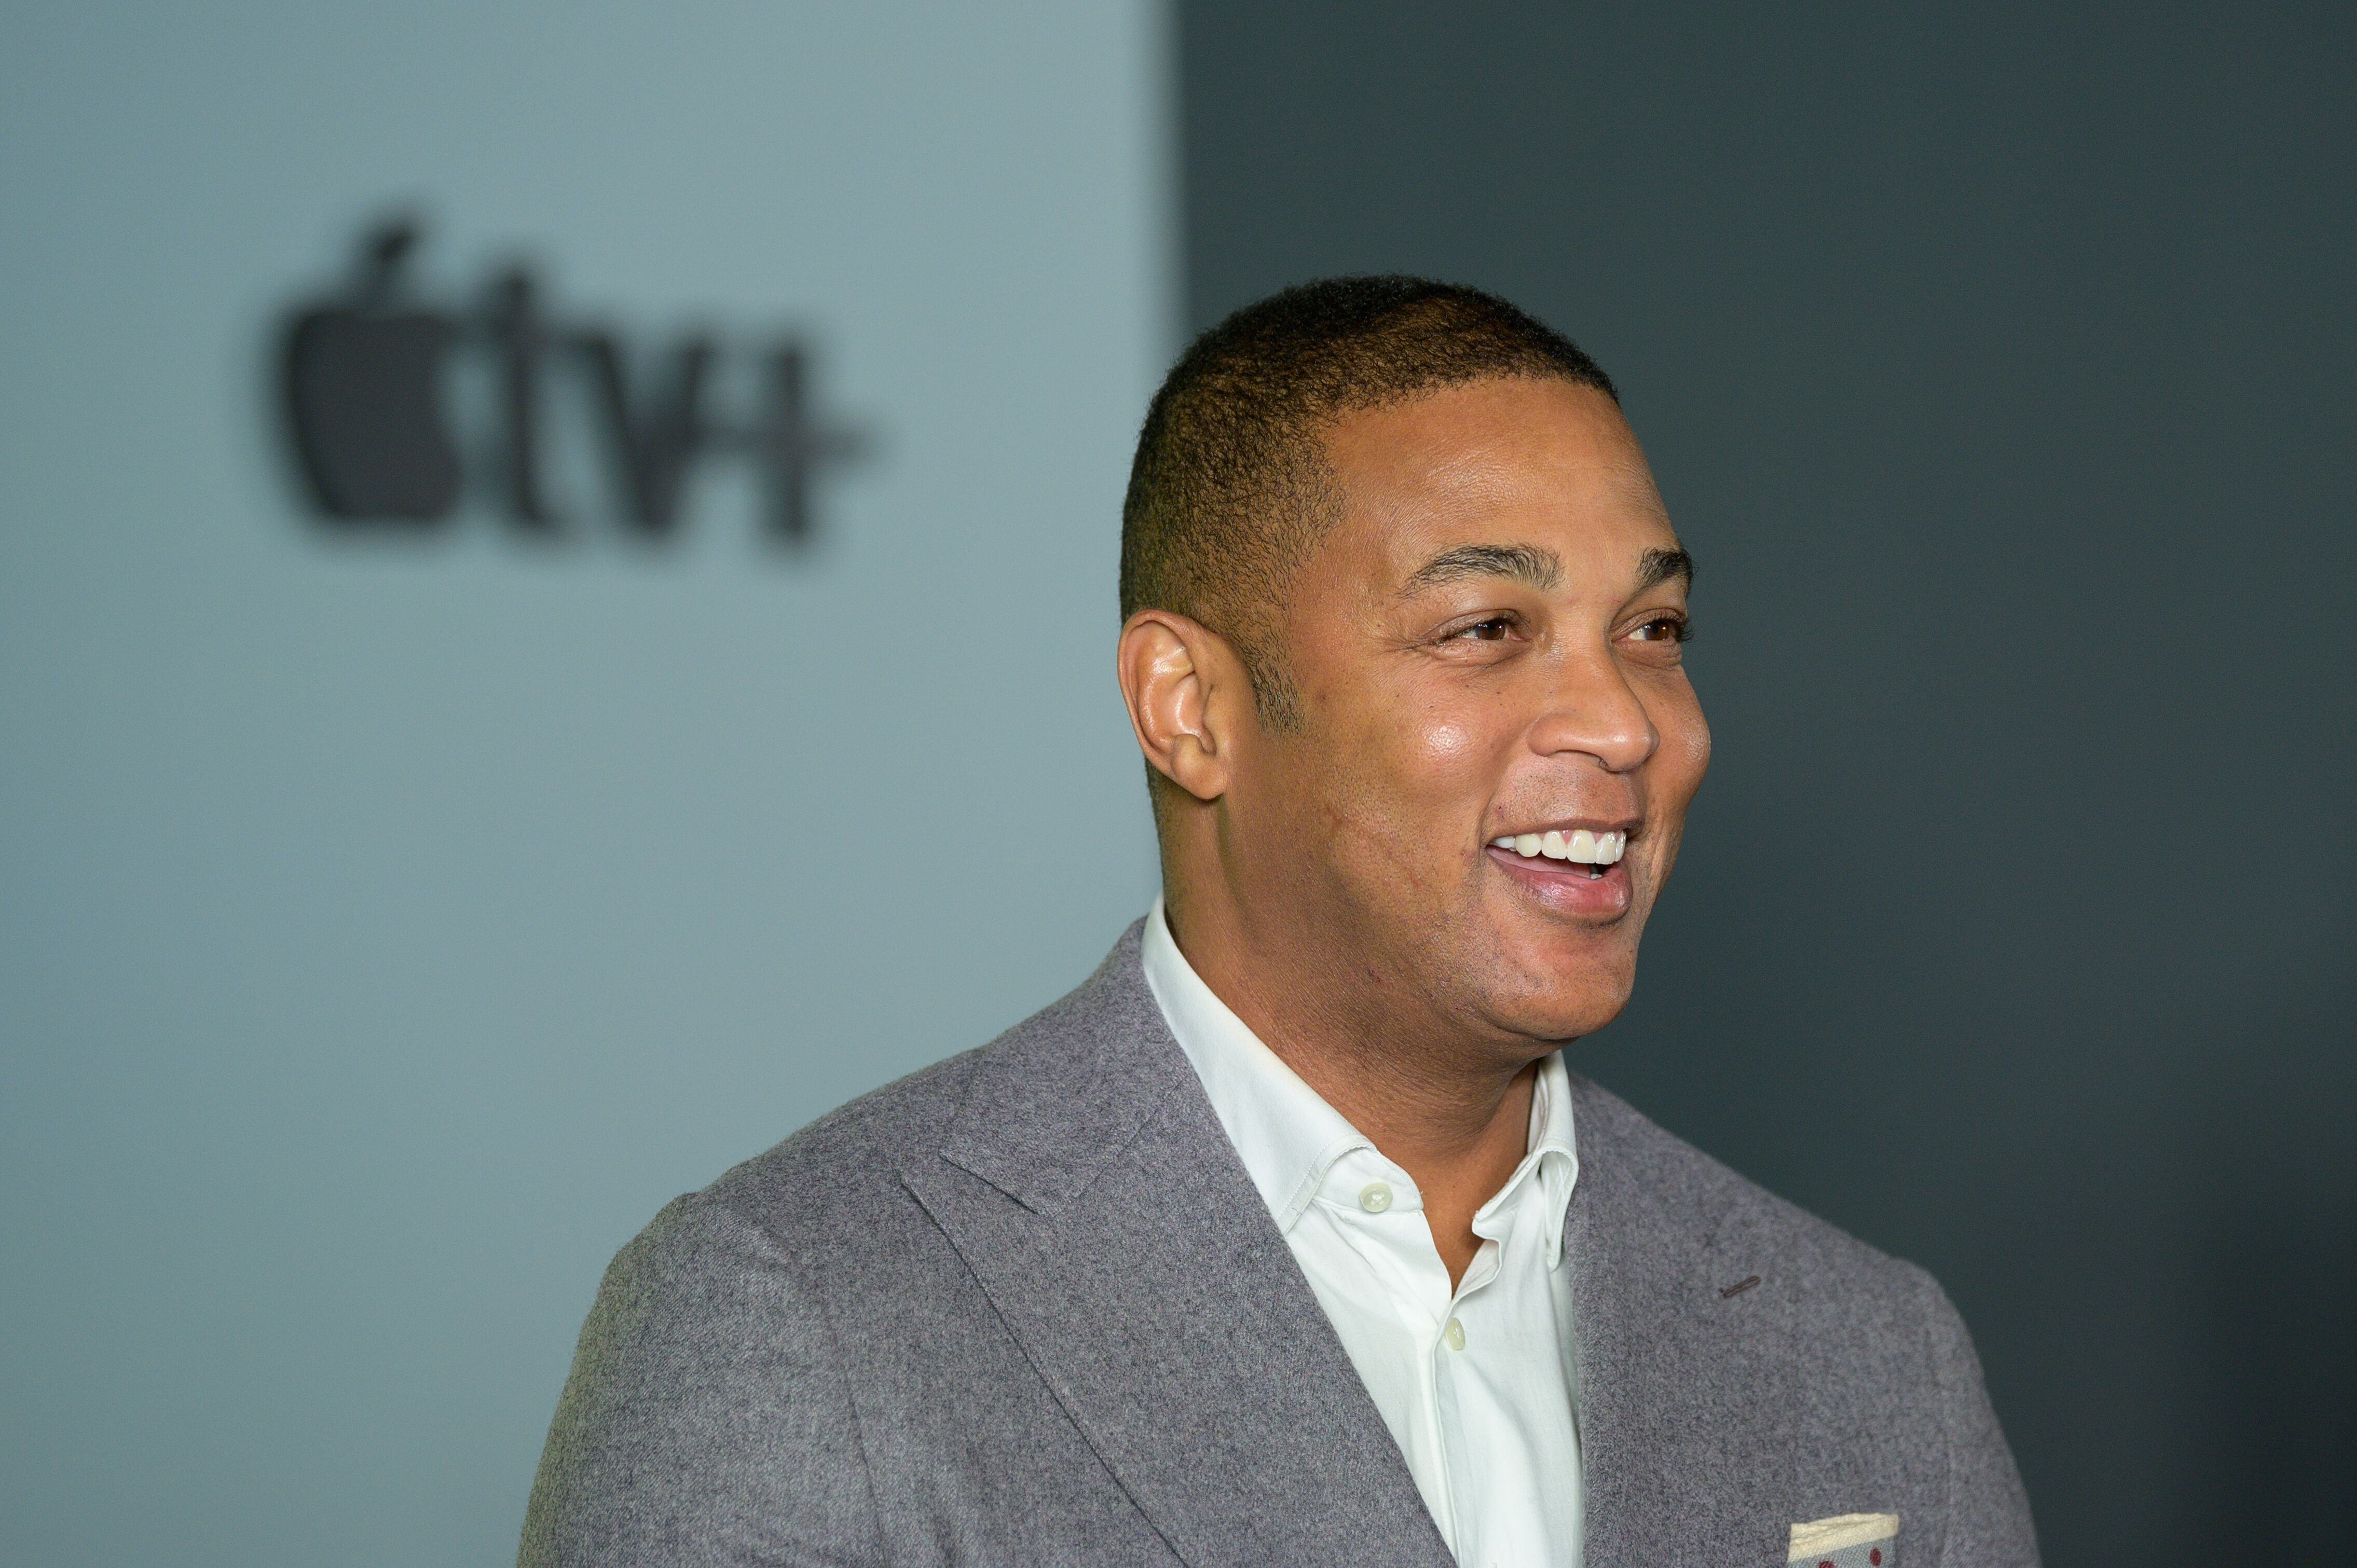 """Don Lemon at Apple TV+'s """"The Morning Show"""" world premiere in October 2019. 